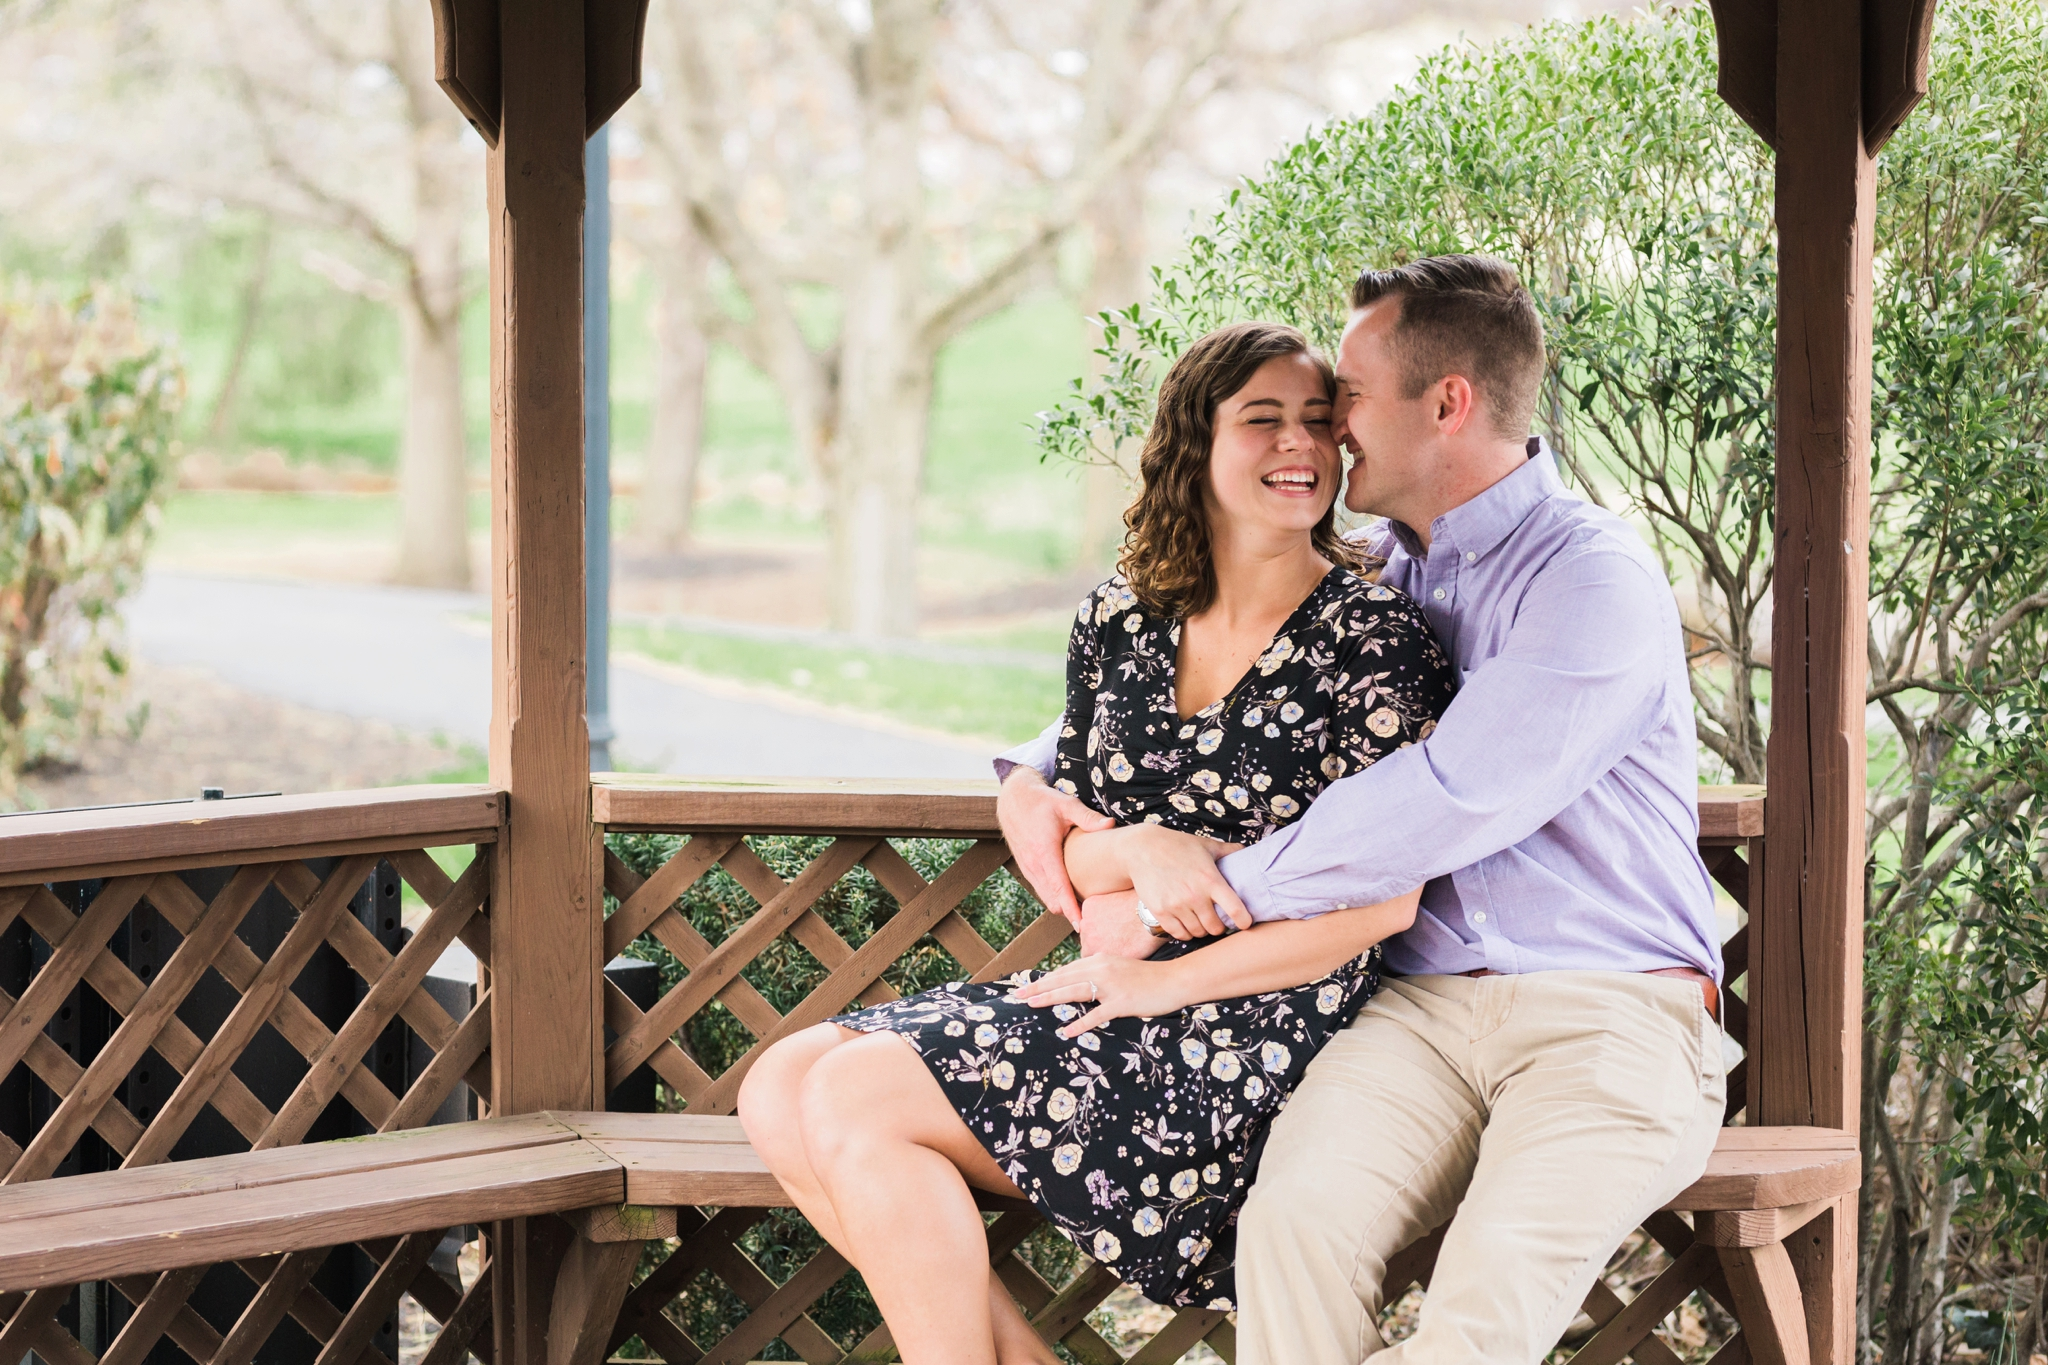 Emily Grace Photography, Lancaster PA Wedding Photographer, Photography for Joyful Couples, Greenfield Corporate Center Park Engagement Session, Gazebo Portraits